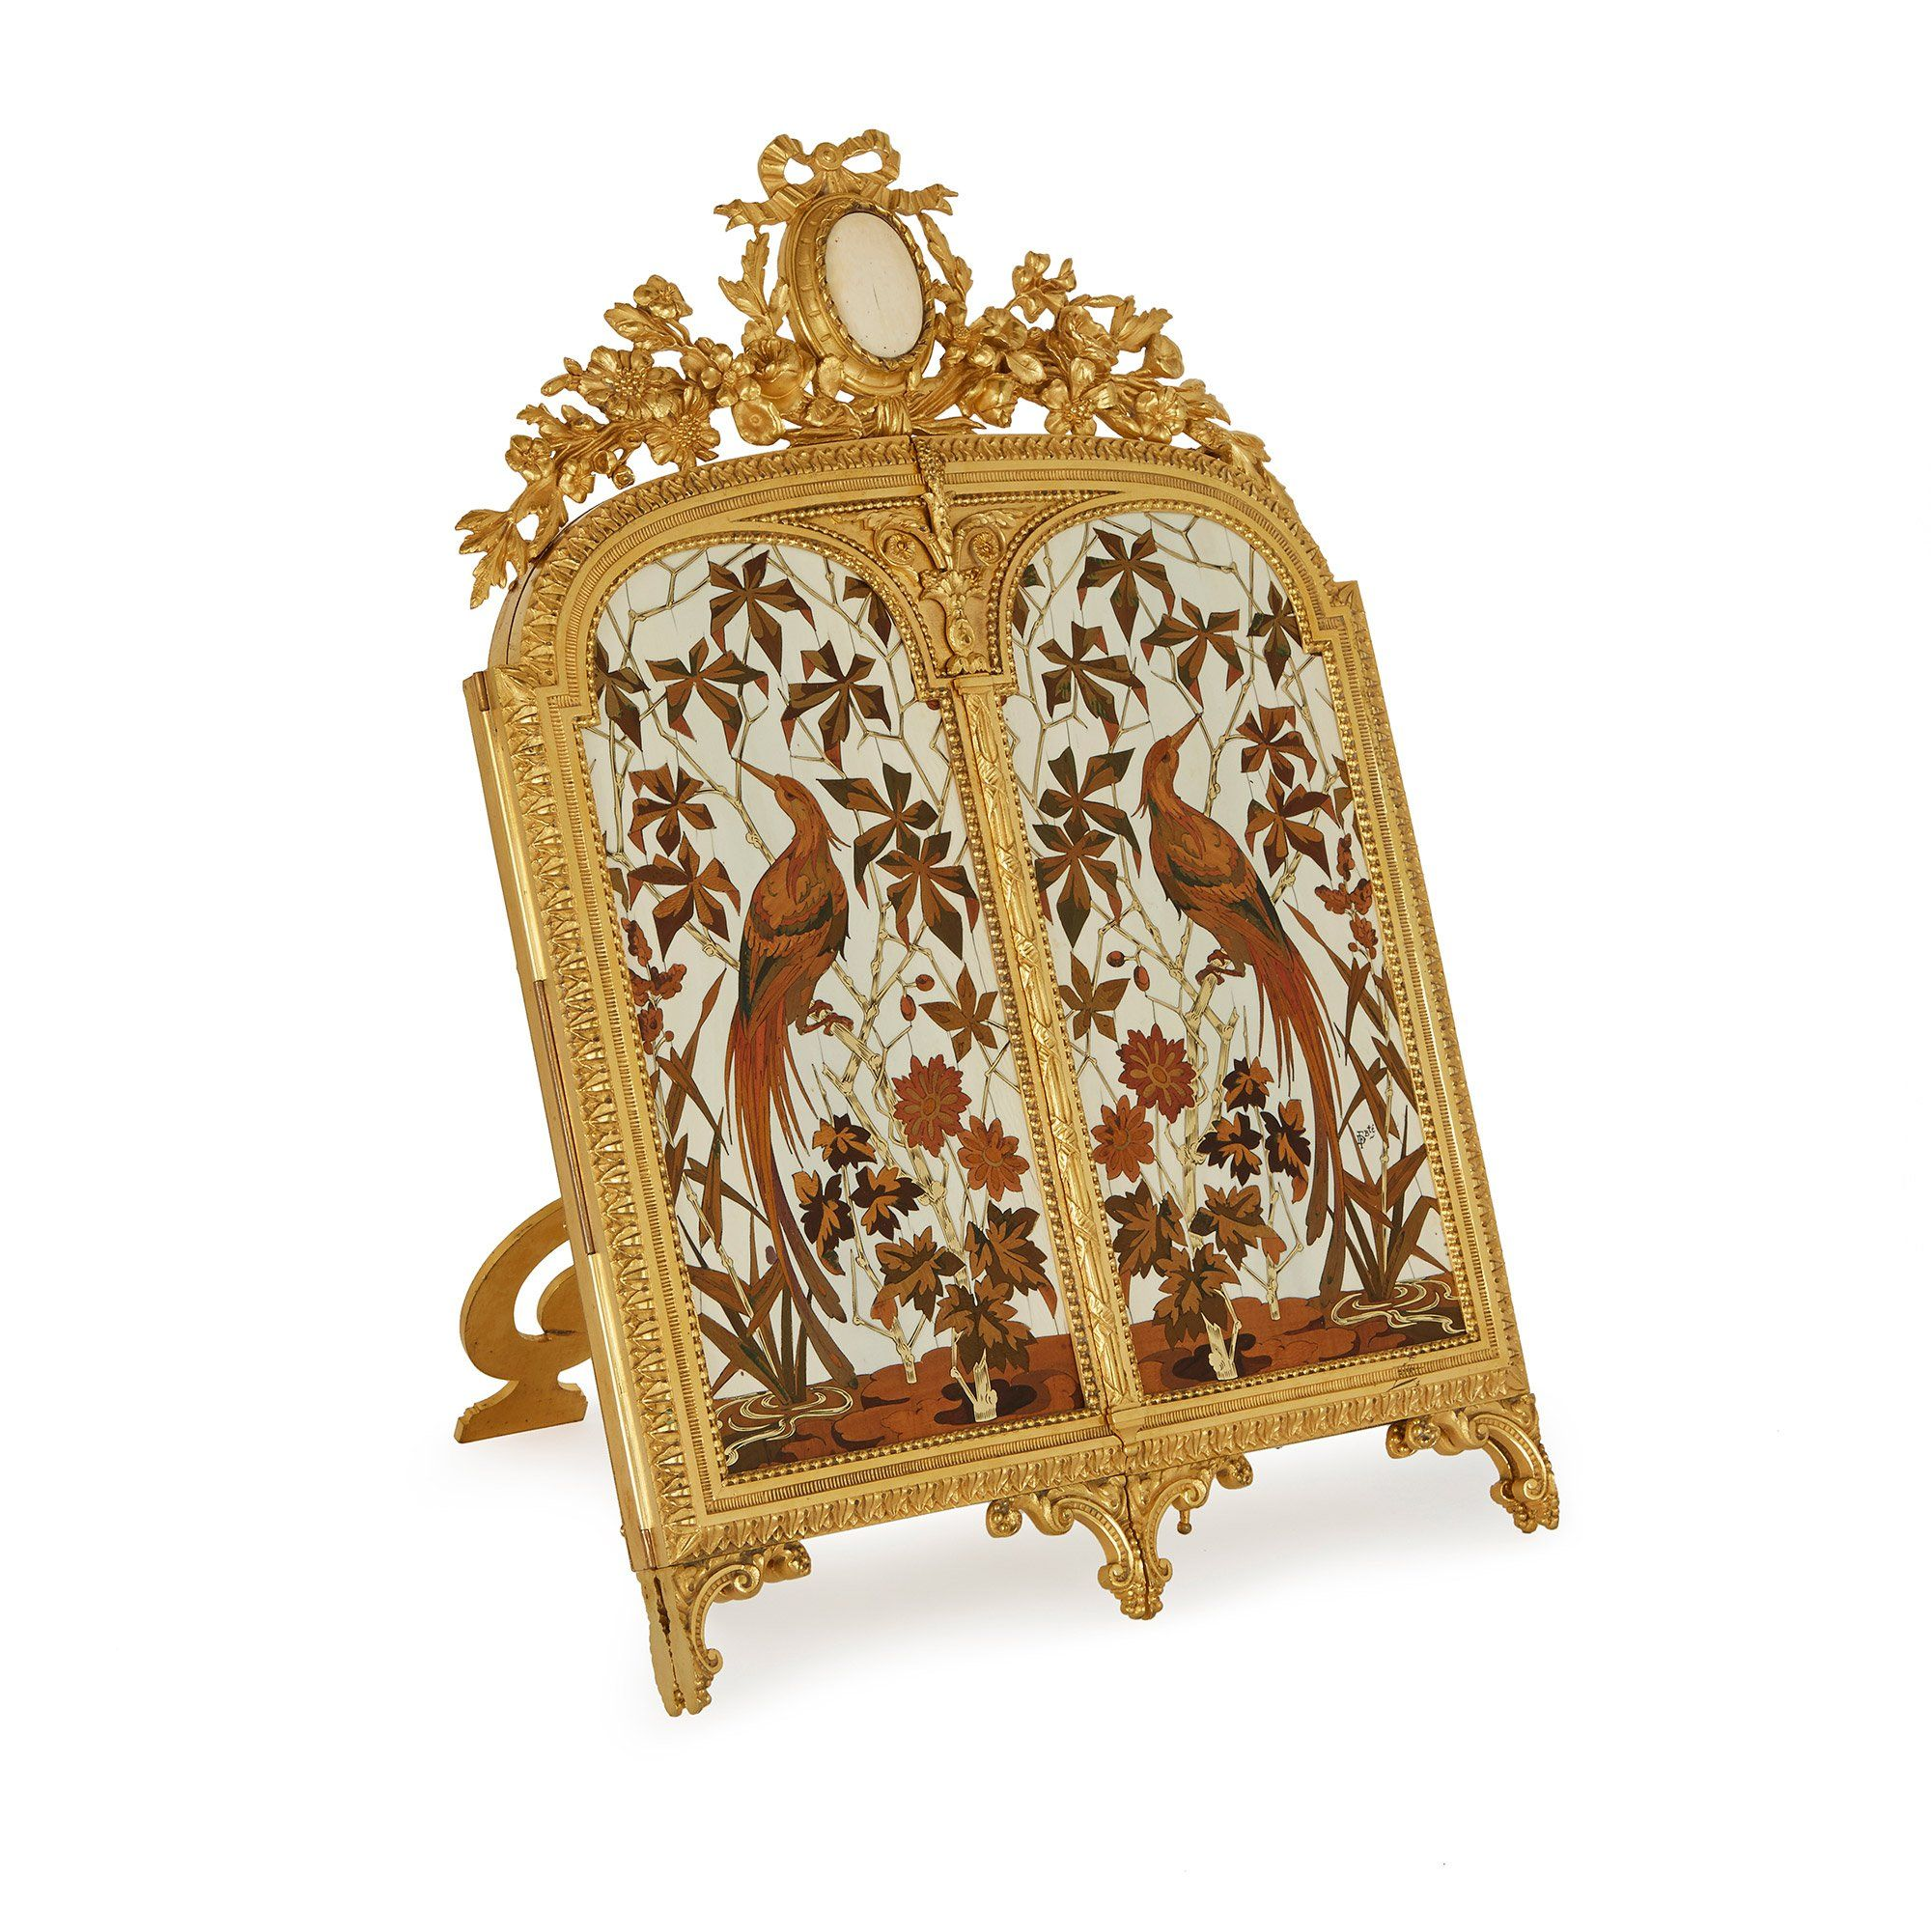 Antique Ormolu Triptych Table Mirror By Giroux And